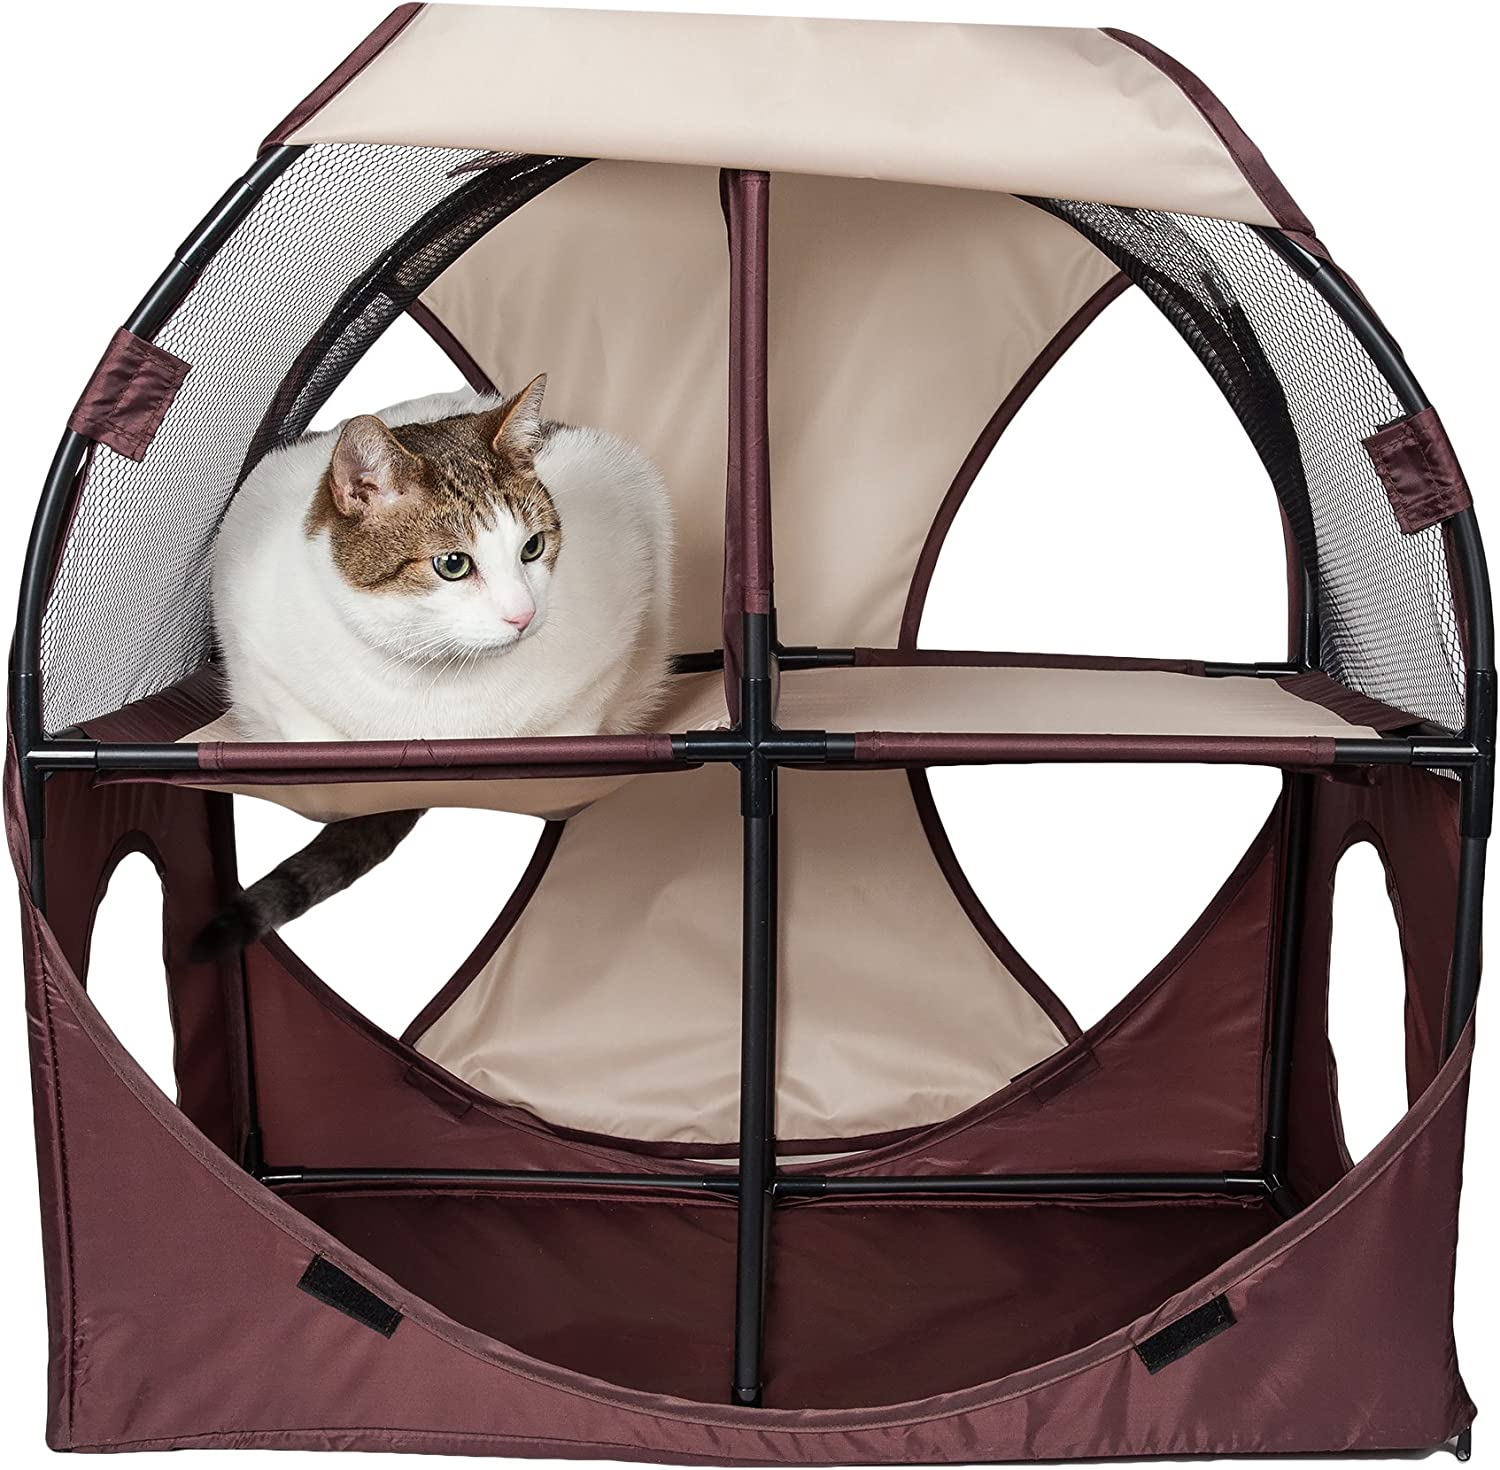 PET LIFE 'KittyPlay' Collapsible Travel Interactive Kitty Cat Tree Maze House Lounger Tunnel Lounge, One Size, Brown and Khaki